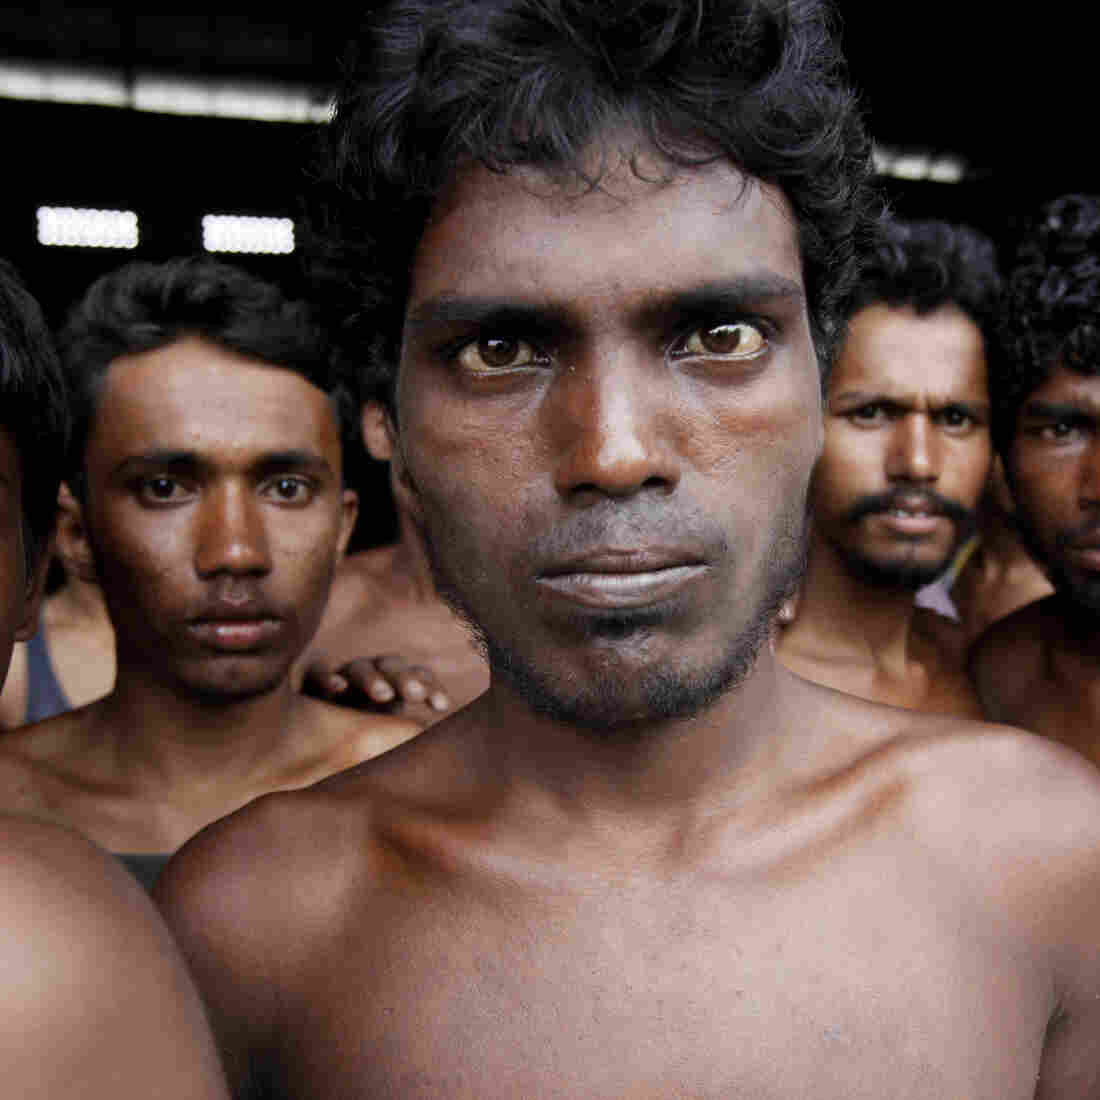 Why No One Wants The Rohingyas